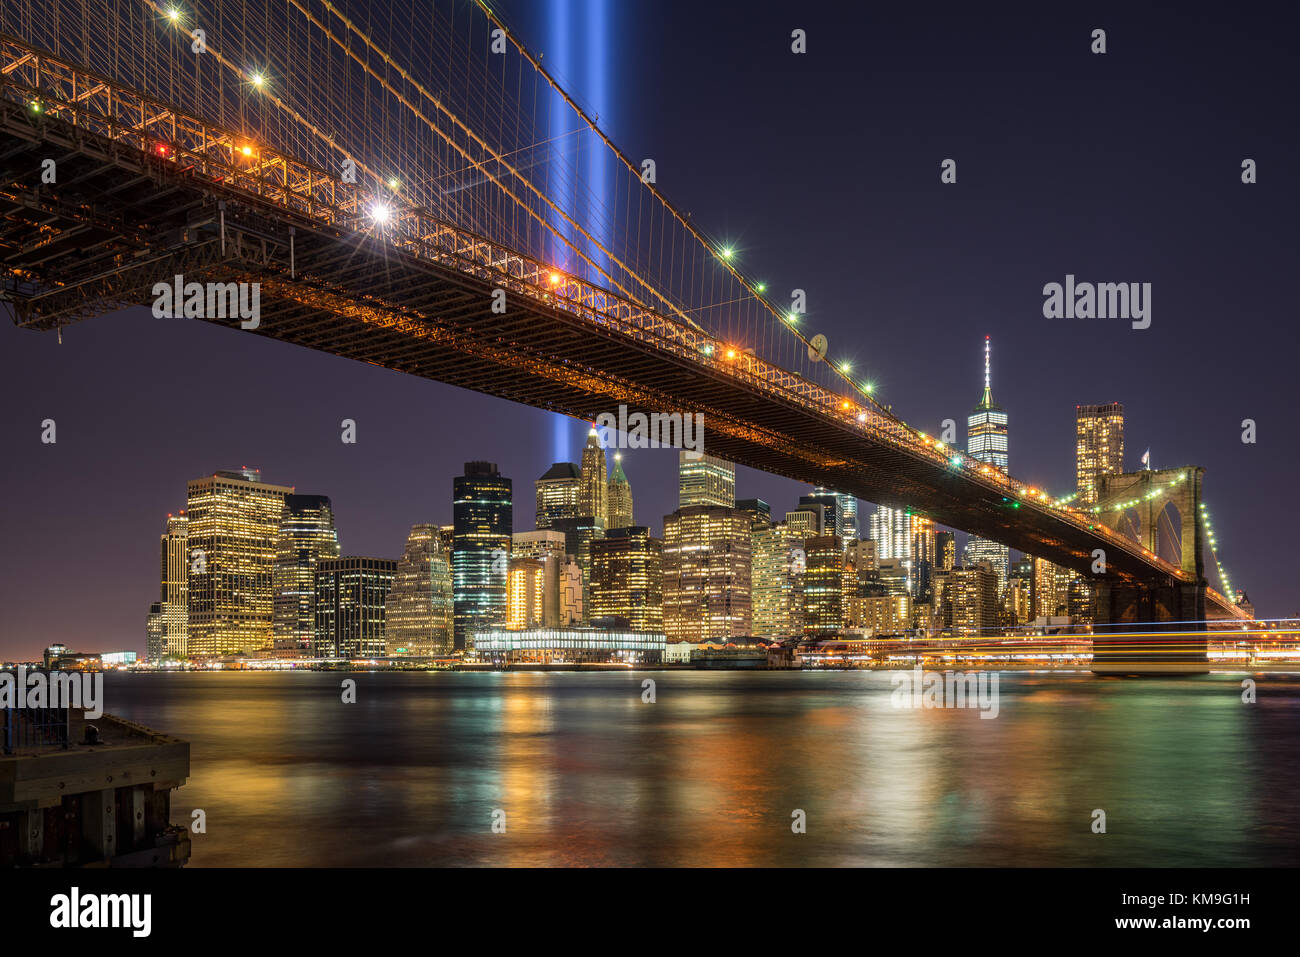 Rendre hommage à la lumière avec le Pont de Brooklyn et les gratte-ciels de Manhattan. Financial District, Photo Stock